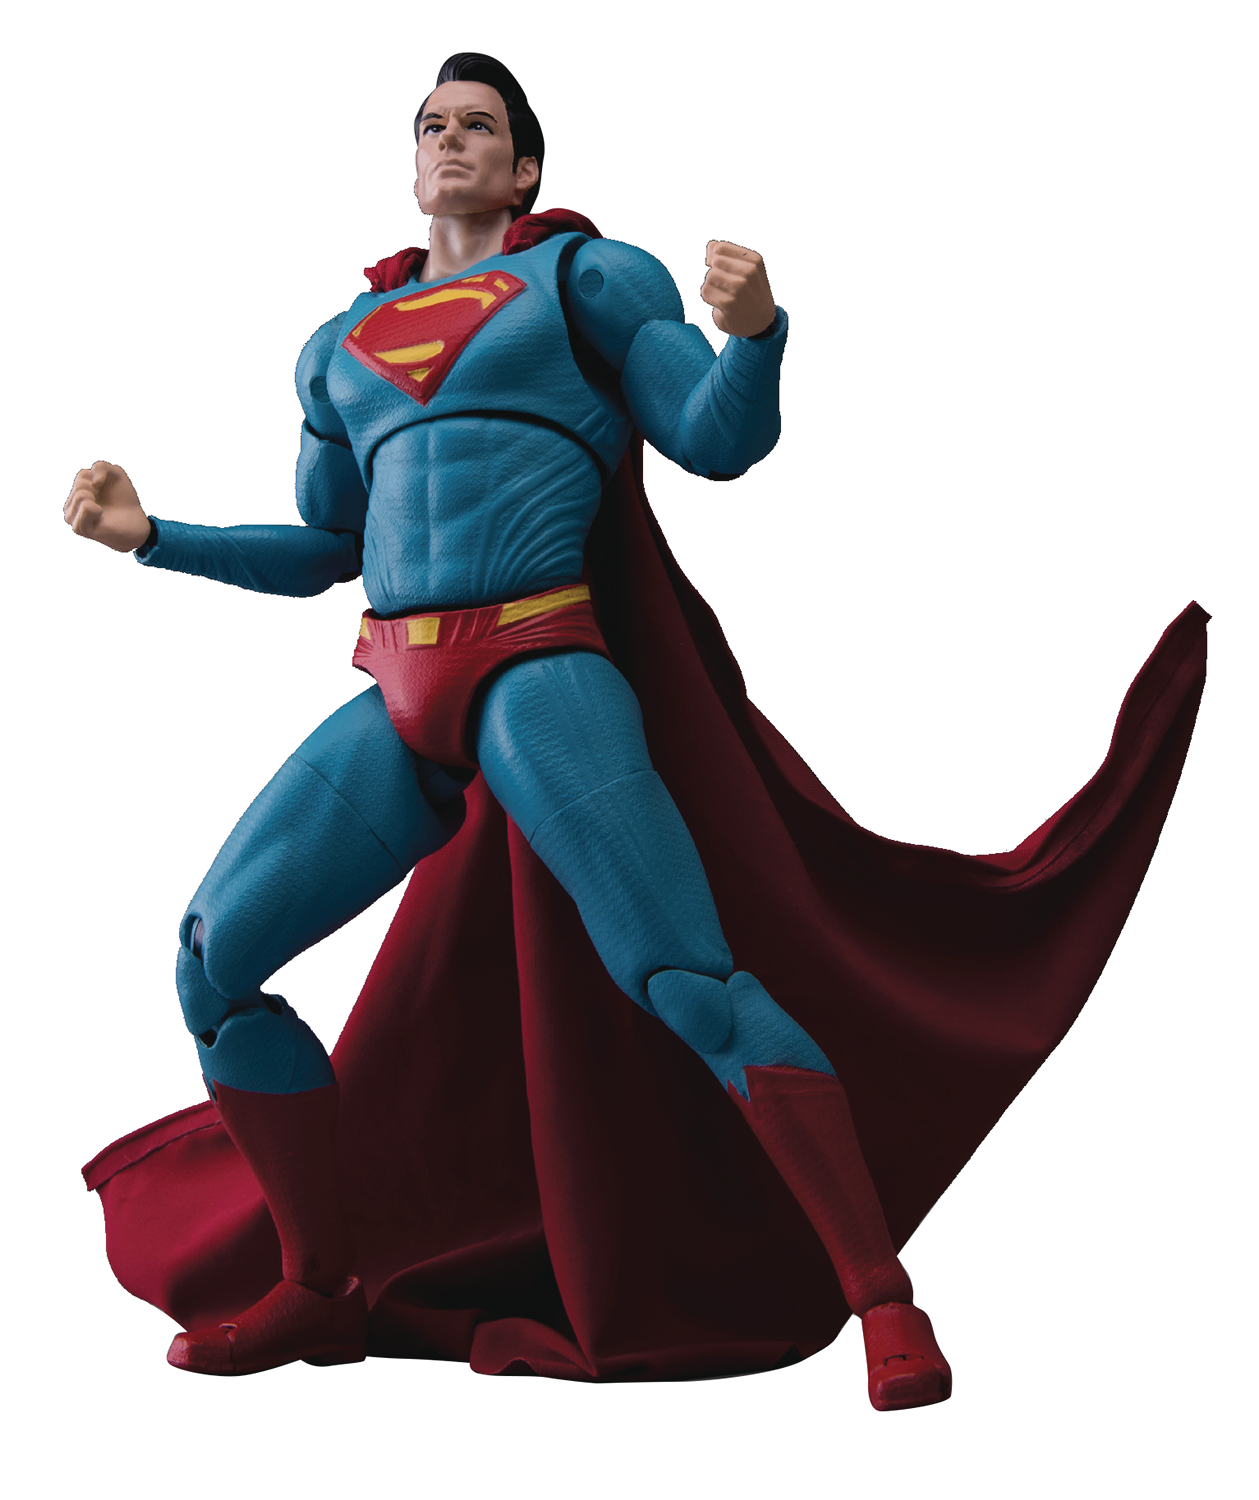 BVS DAH-003SP DYNAMIC 8CTION HEROES SUPERMAN PX AF COMIC VER